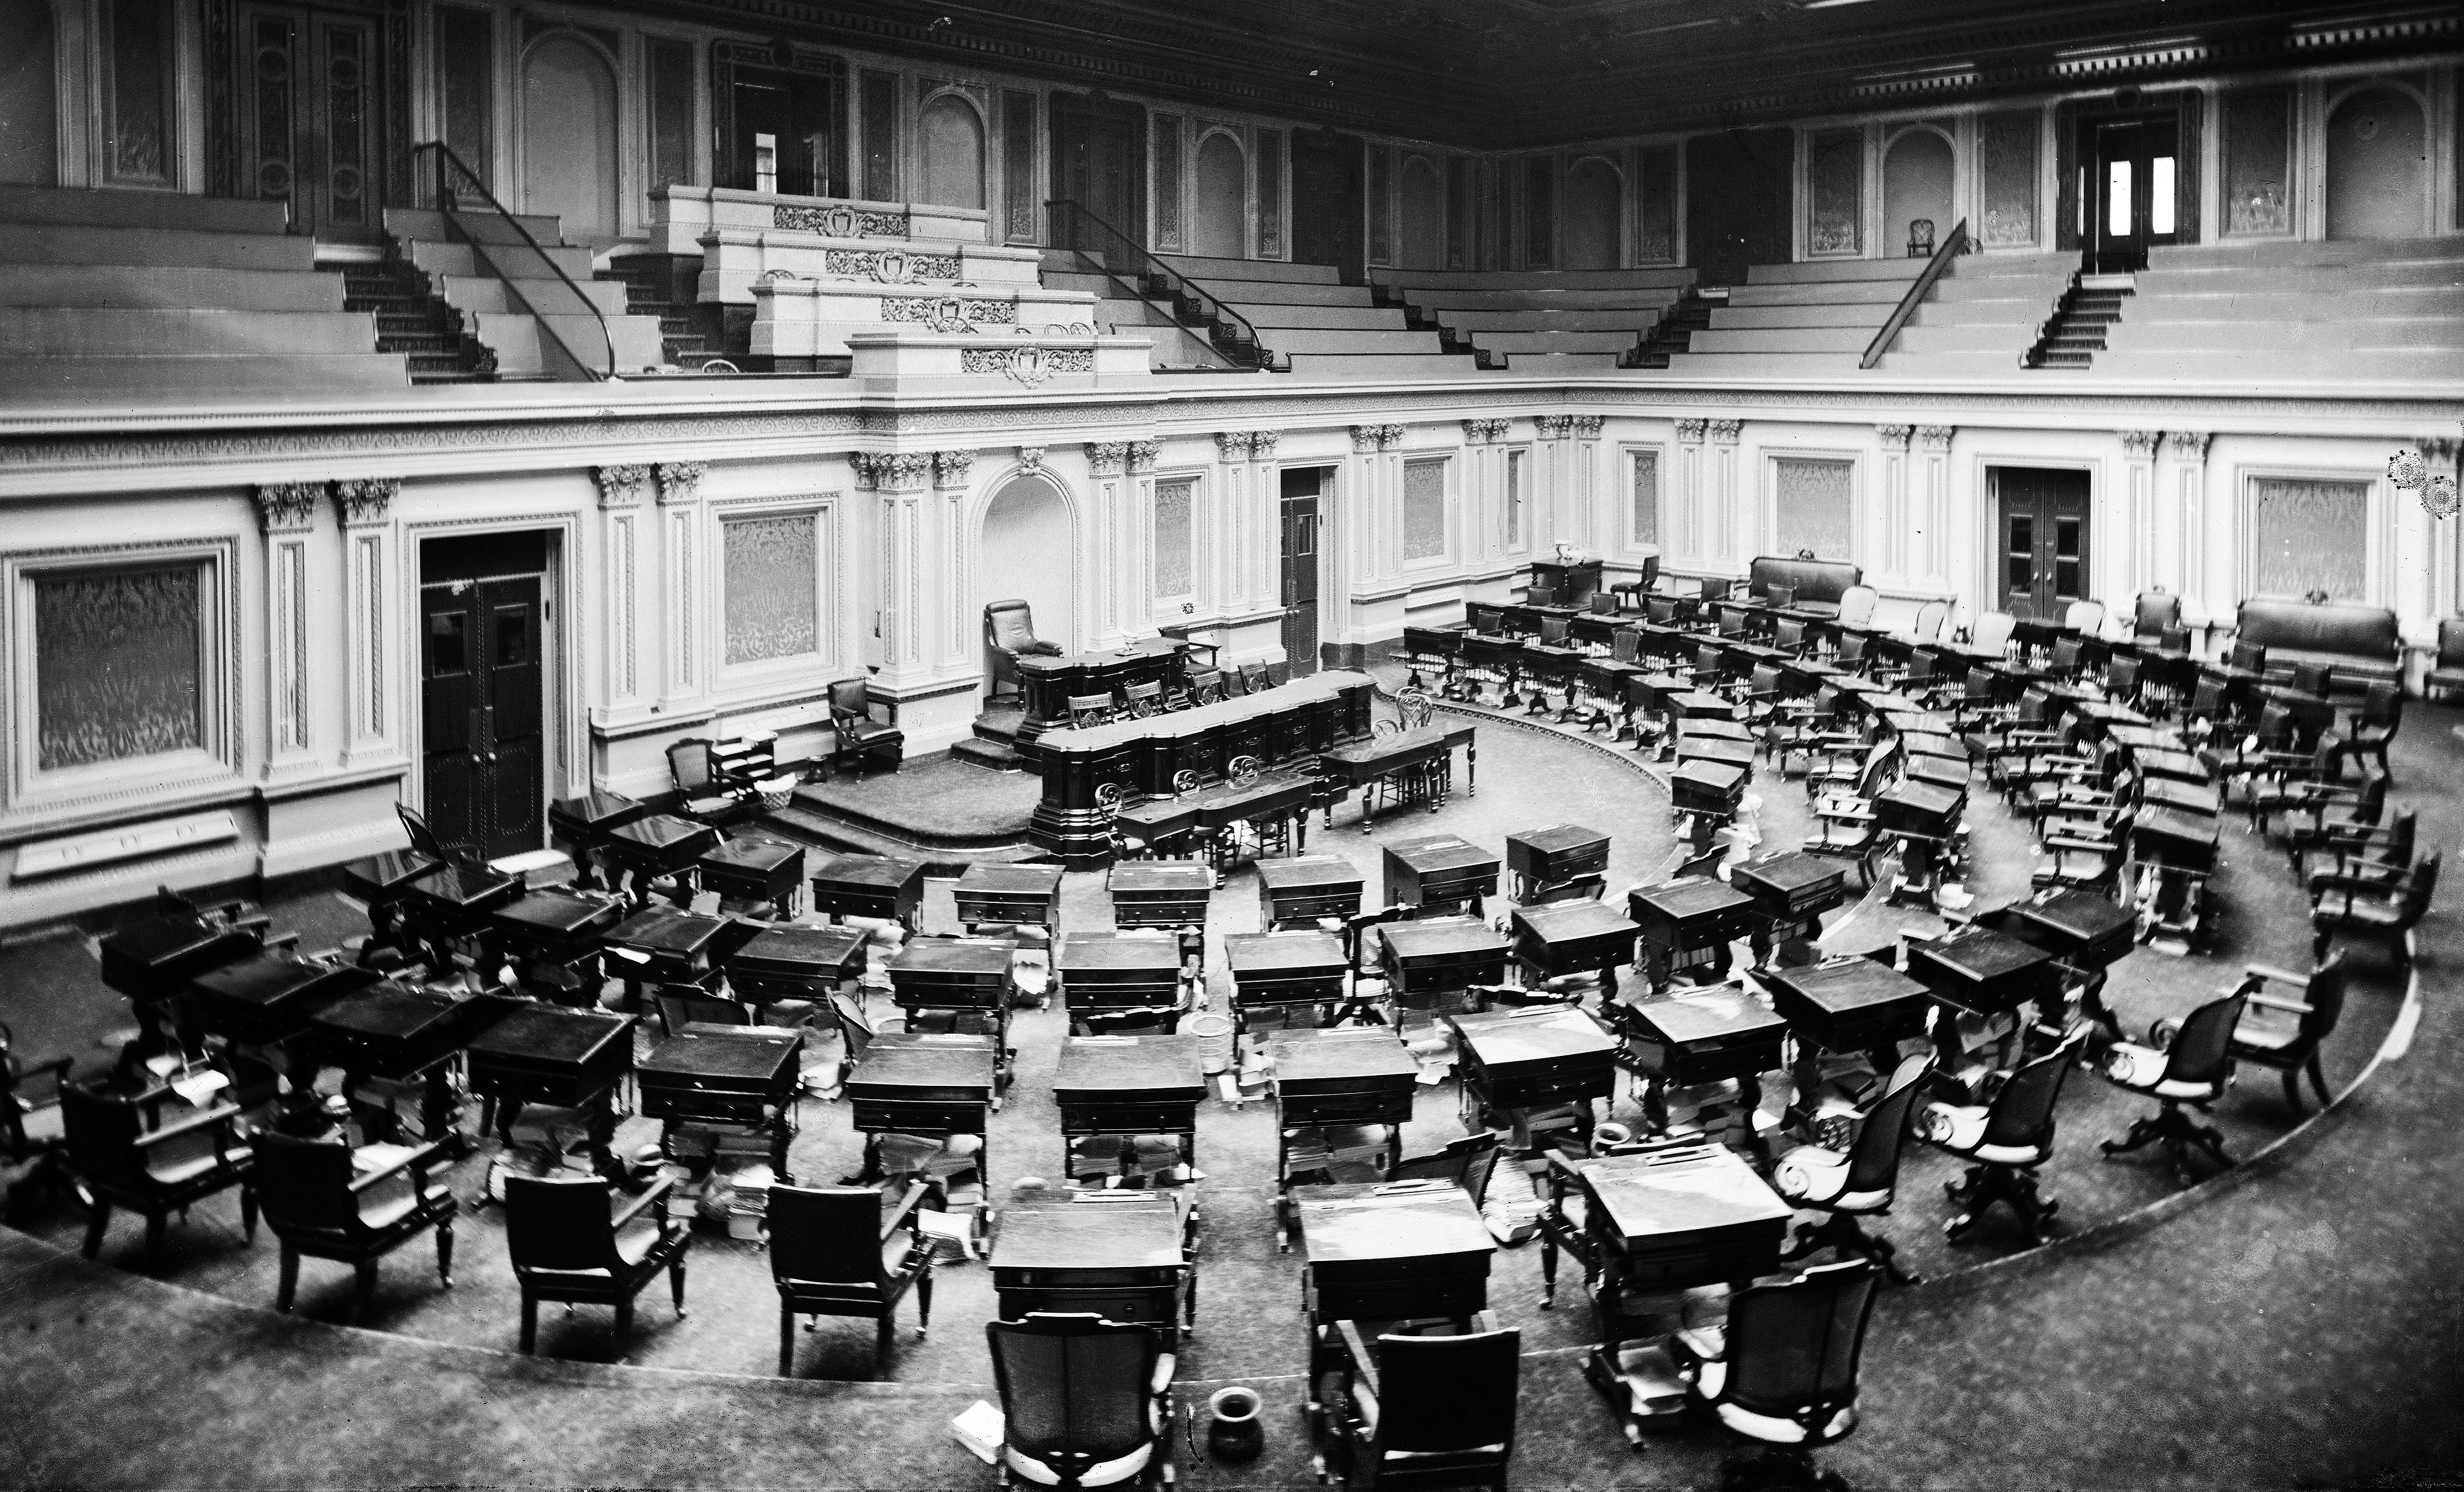 Senate chamber clipart clipart library stock File:US Senate Chamber c1873.jpg - Wikimedia Commons clipart library stock